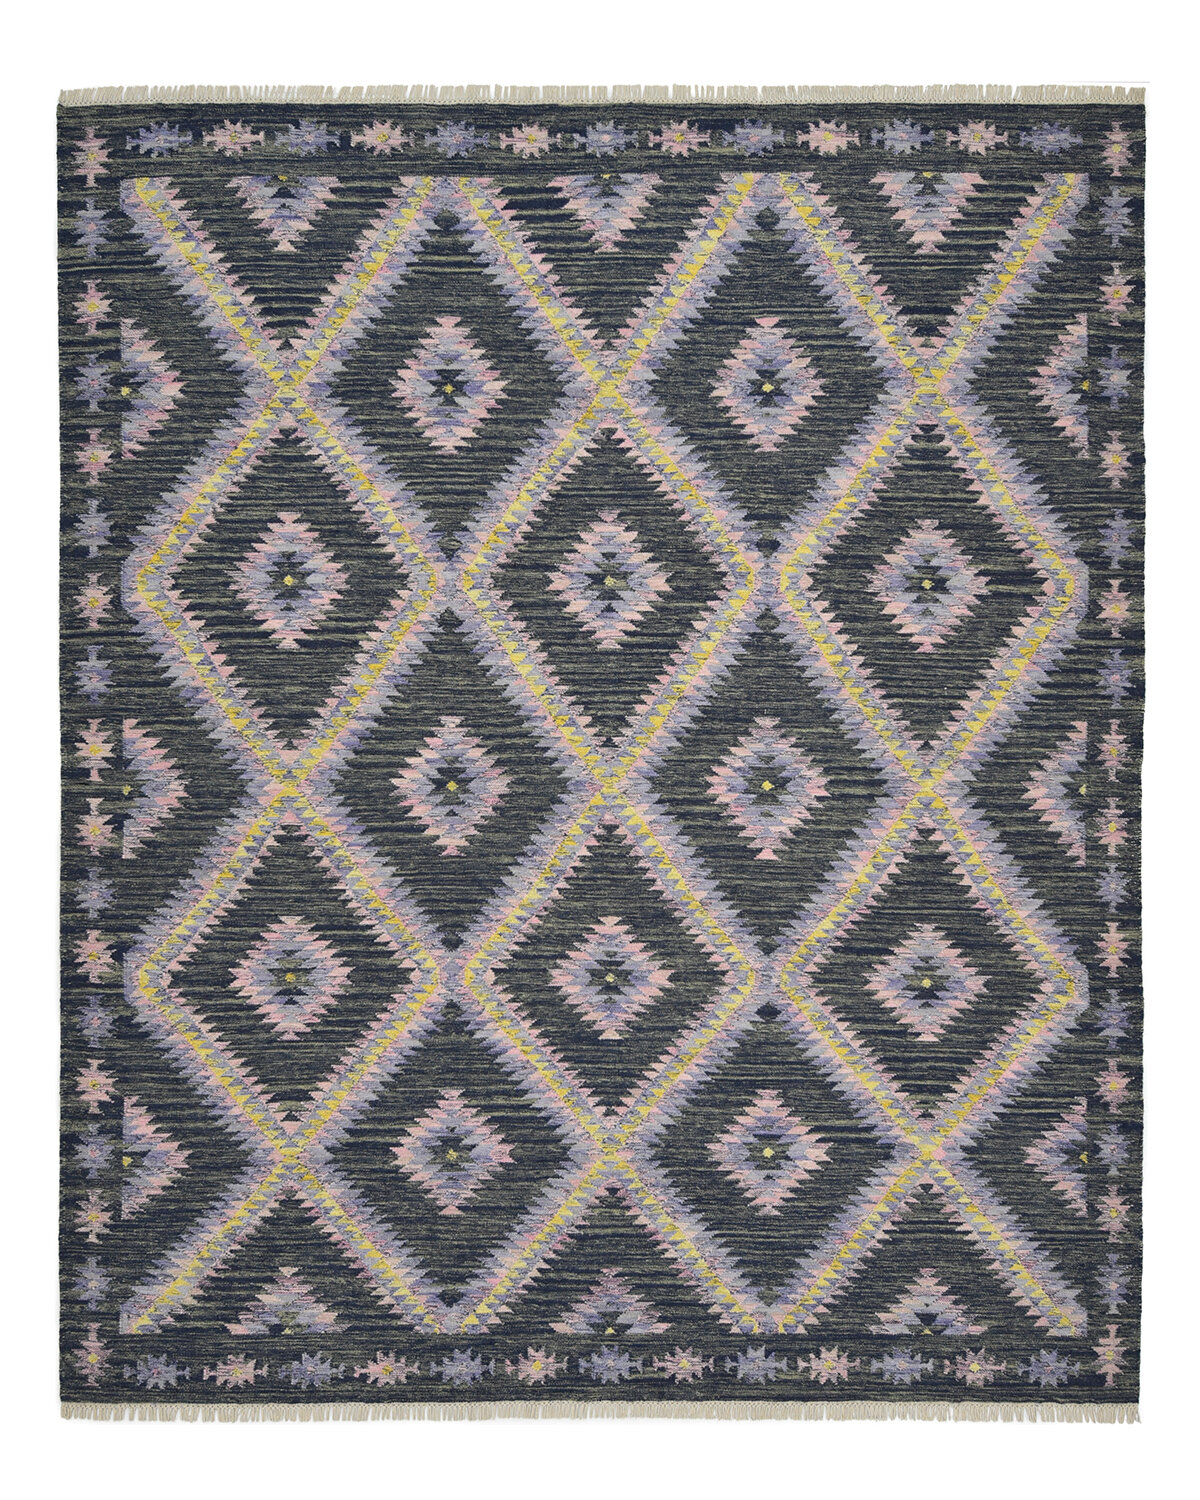 Solo Rugs One Of A Kind Hand Knotted New Age Modern Gray Yellow Pink 8 X 10 Wool Area Rug Wayfair